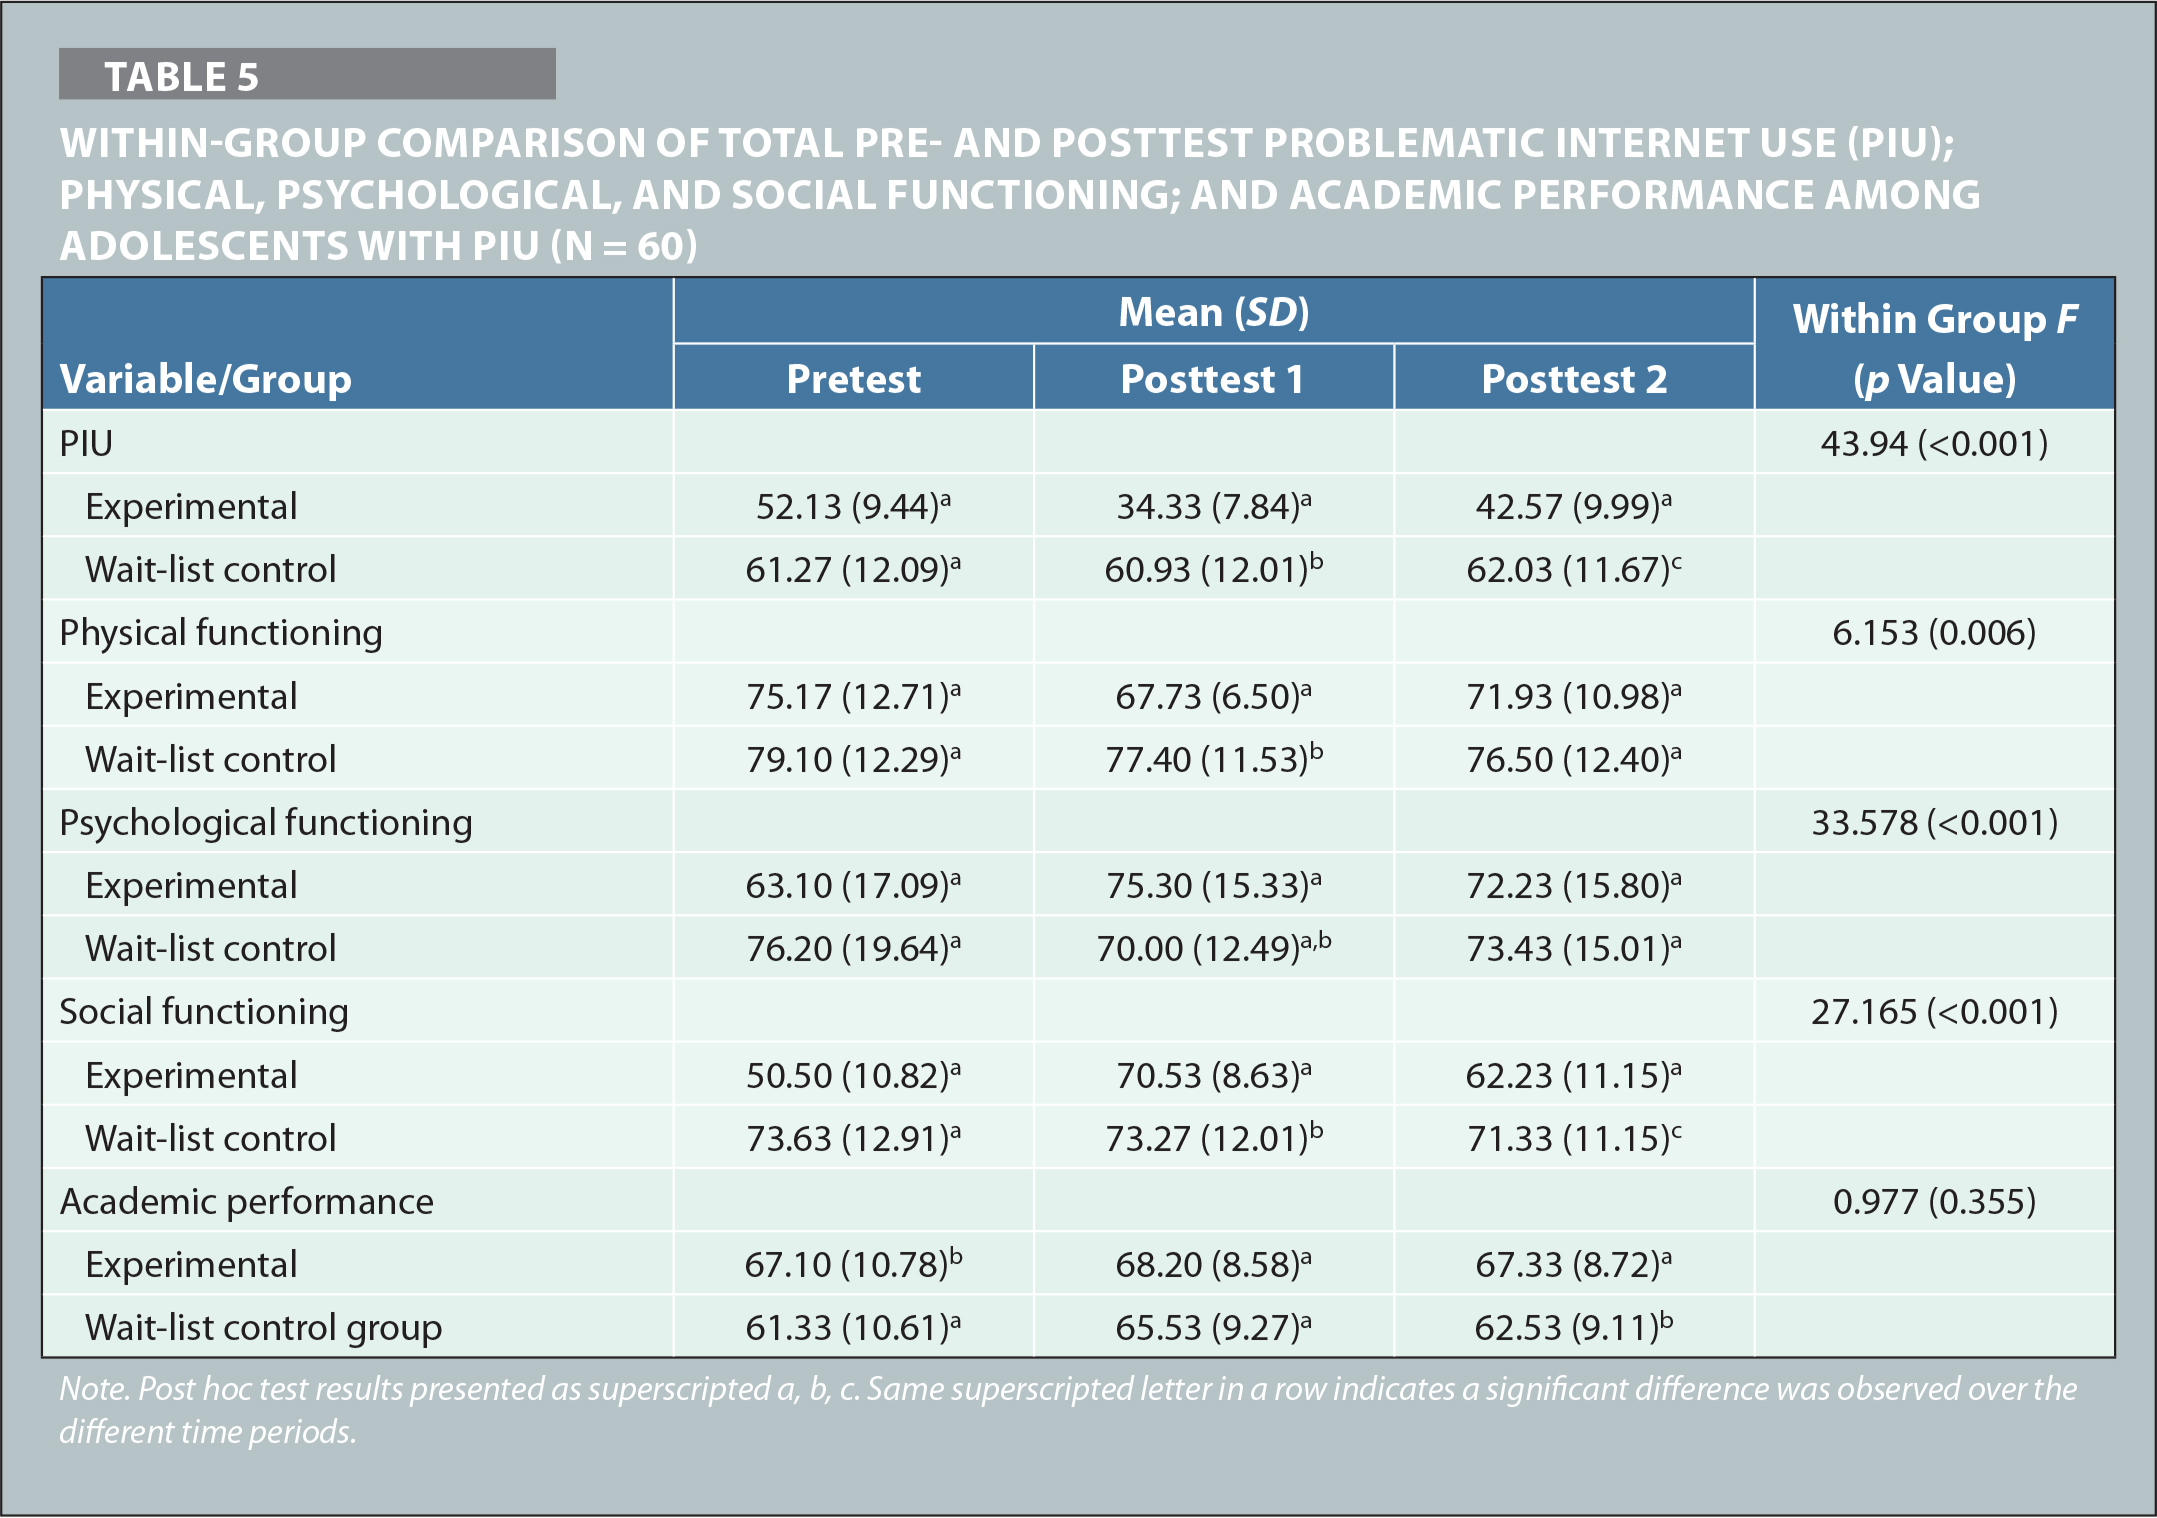 Within-Group Comparison of Total Pre- and Posttest Problematic Internet Use (PIU); Physical, Psychological, and Social Functioning; and Academic Performance Among Adolescents With PIU (N = 60)